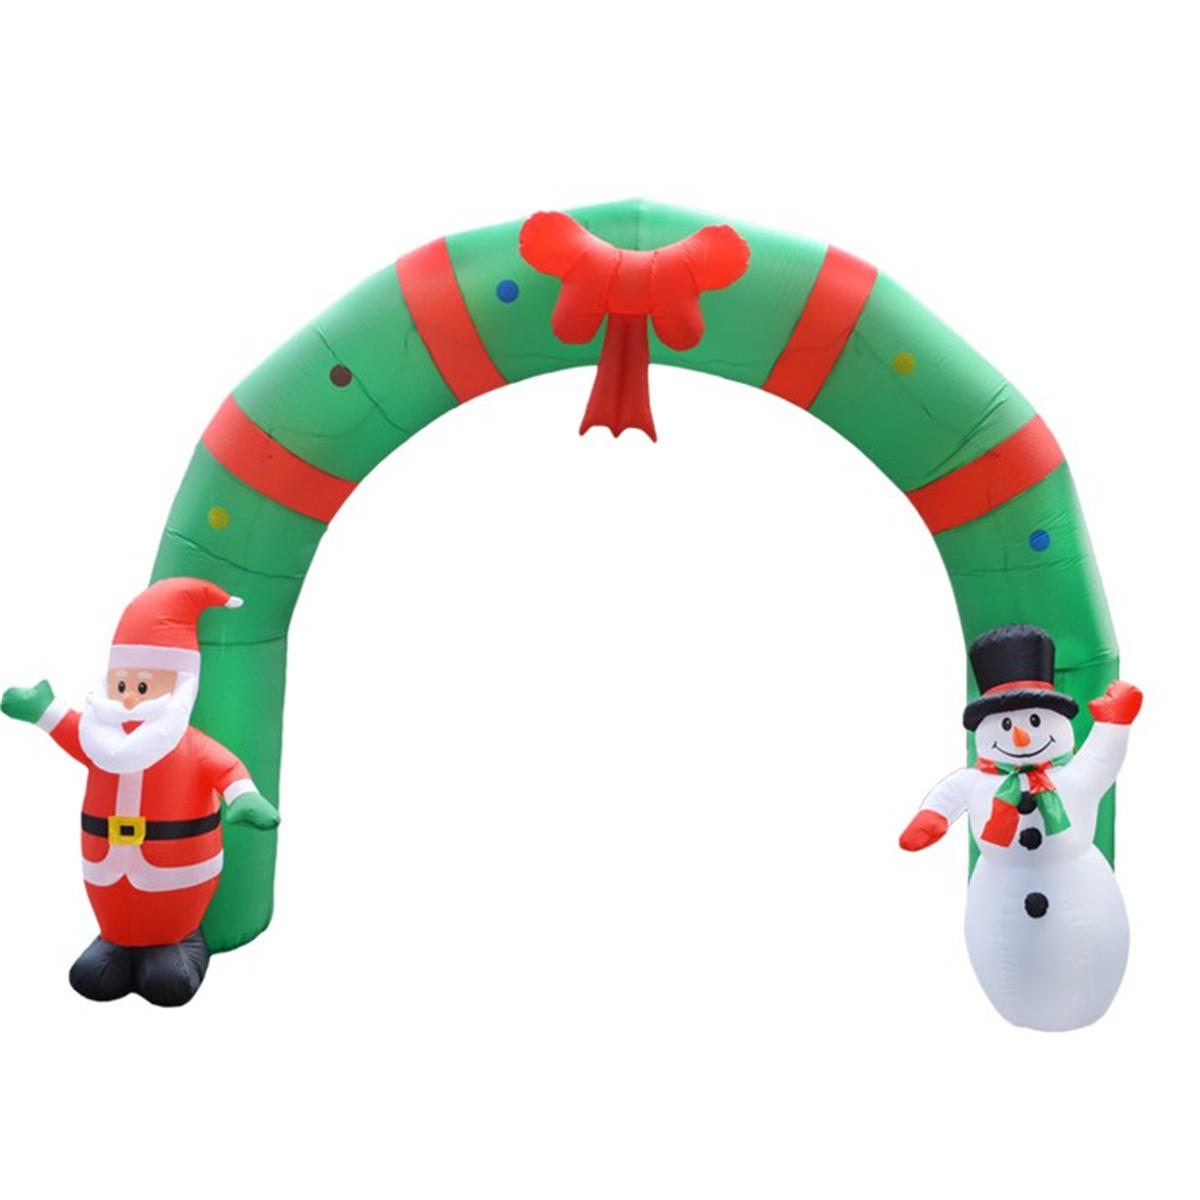 250cm huge inflatable christmas arch archwaysanta snowman indoor outdoor decorations - Huge Inflatable Christmas Decorations